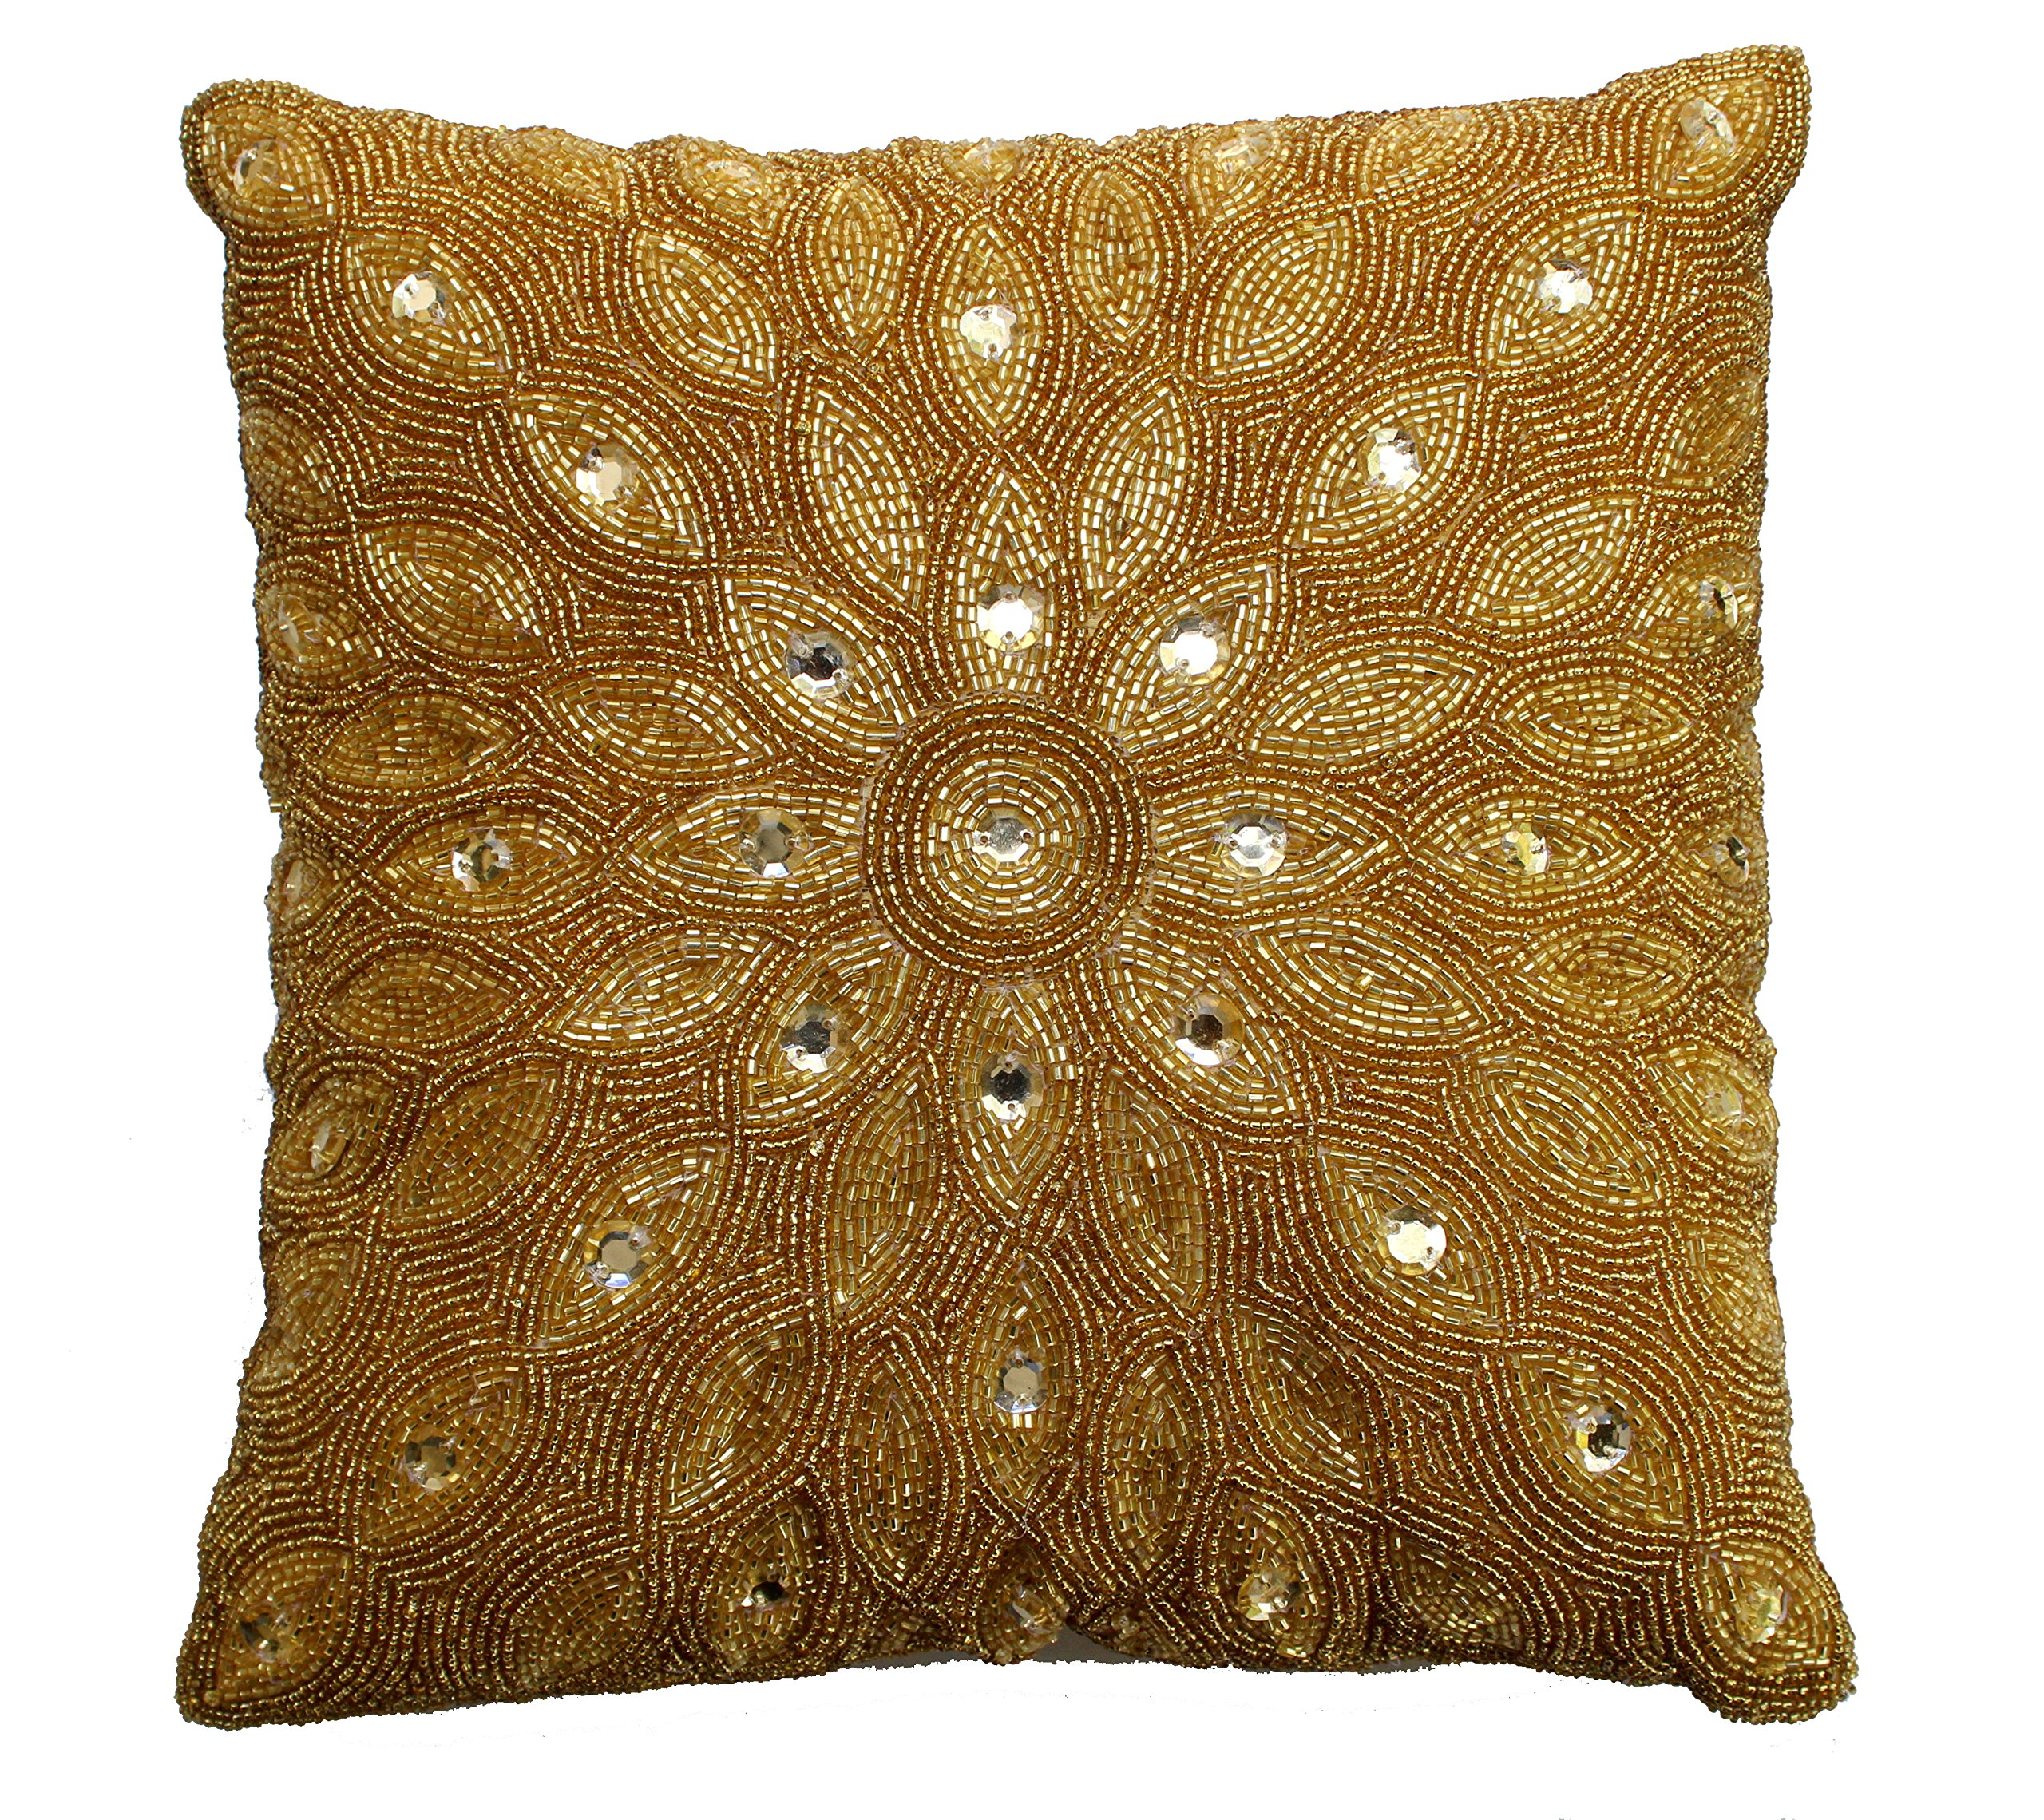 "COTTON CRAFT - Peacock Hand Beaded Decorative Pillow 12x12 Square Gold, Painstakingly and lovingly Handmade by Skilled Artisans, A Beautiful and Elegant Accessory to Dress up Your Couch, Sofa or Bed - Peacock Beaded Pillow - Gold Timeless hand crafted design Size: 12"" x12"". 100% Polyfill - living-room-soft-furnishings, living-room, decorative-pillows - A1tS4LNj%2BdL -"